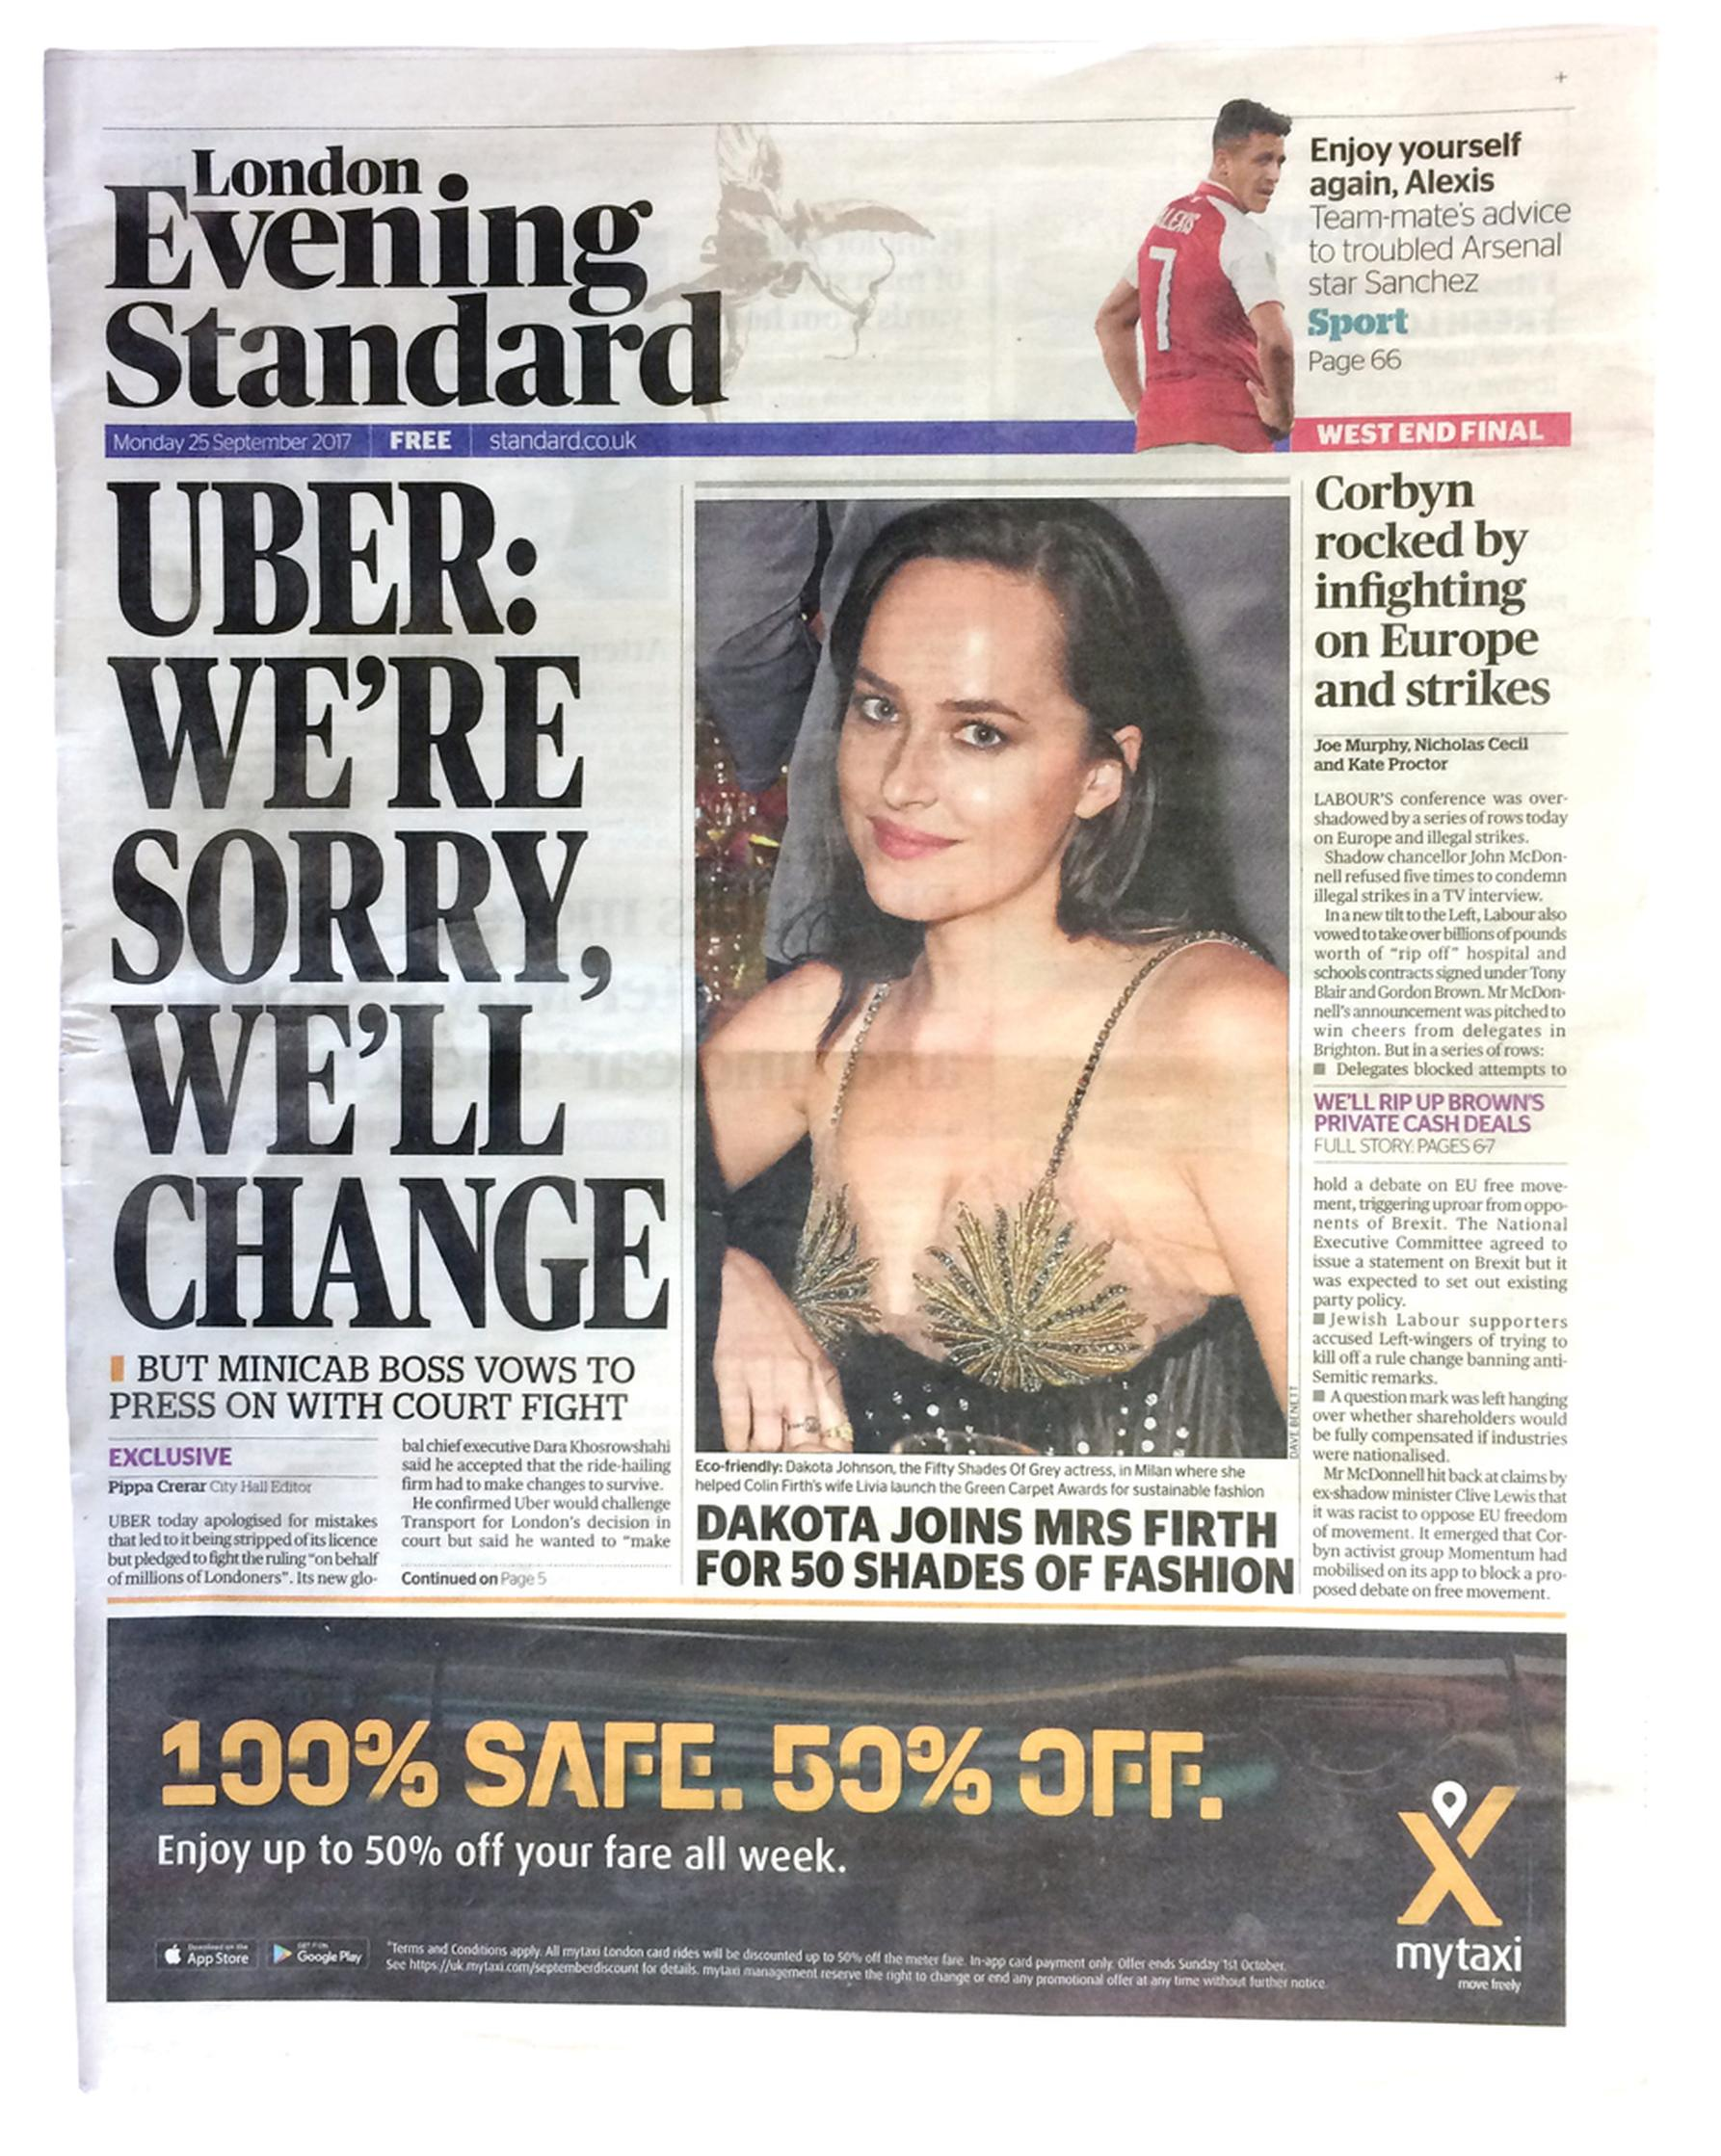 On 25 September London's Evening Standard devoted four full pages to Uber's dispute with Transport for London